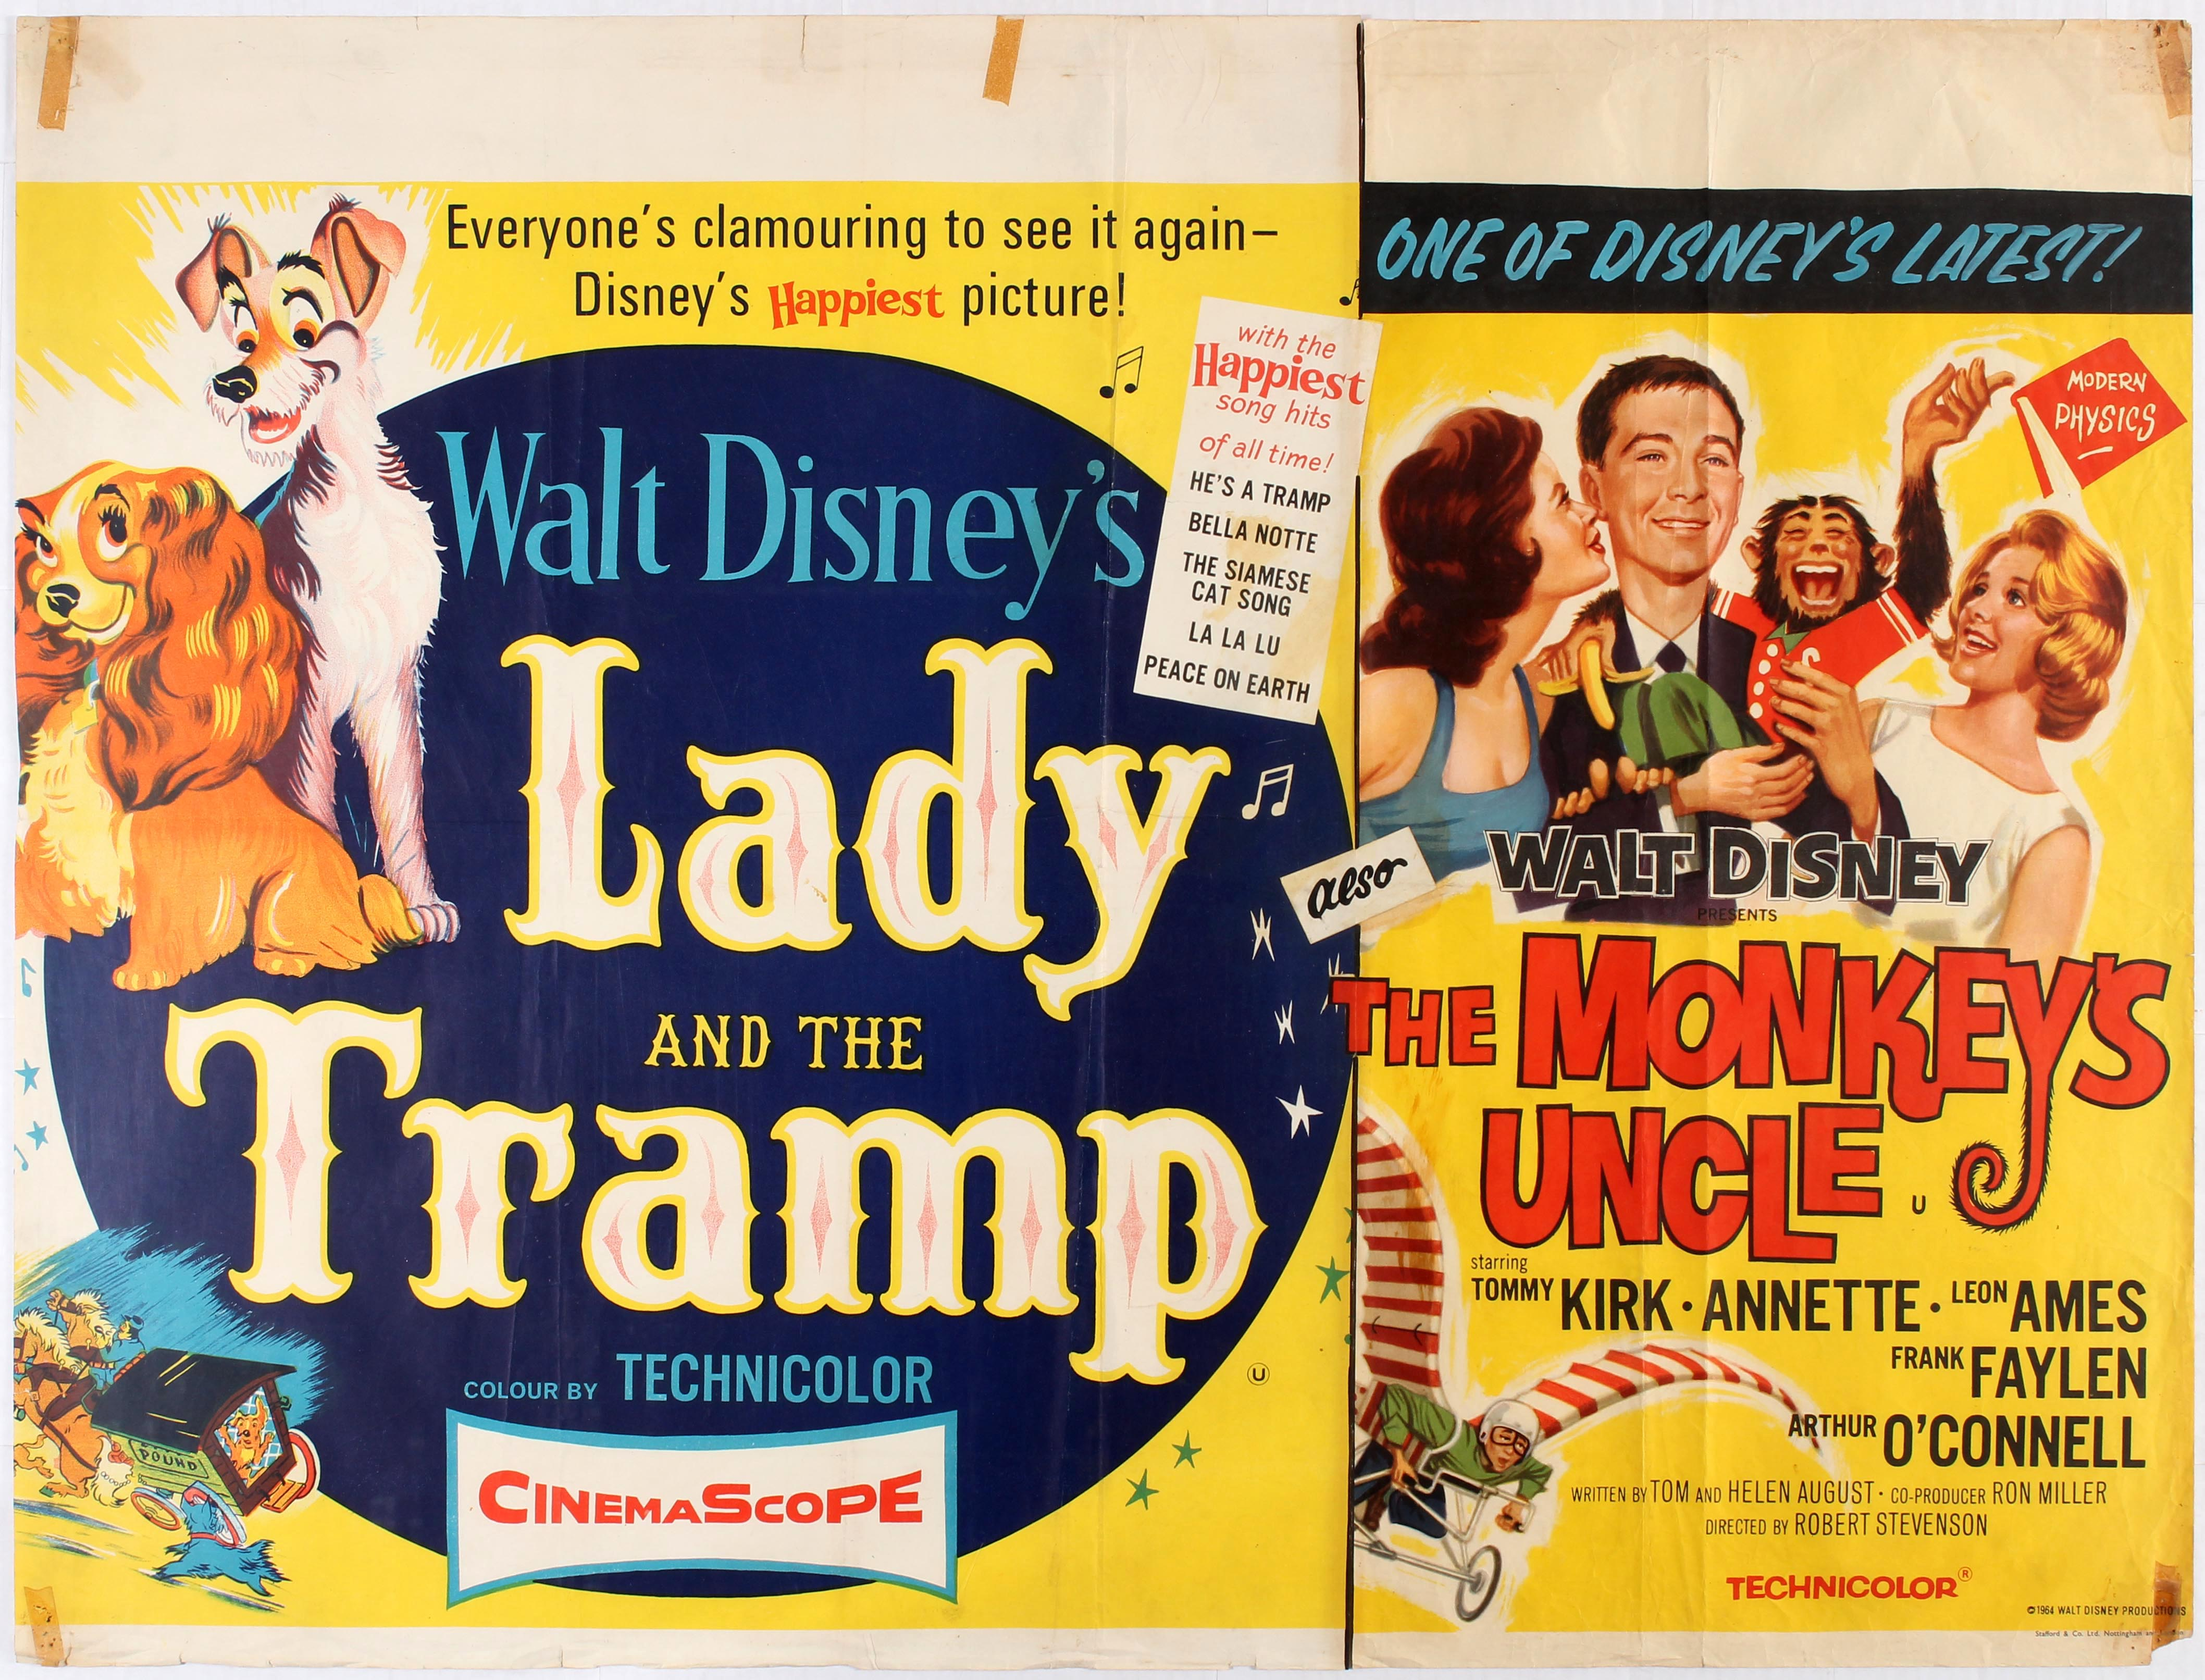 Original Vintage Movie Poster For Uk Re Release Of Lady And The Tramp And Uk Release Of The Monke